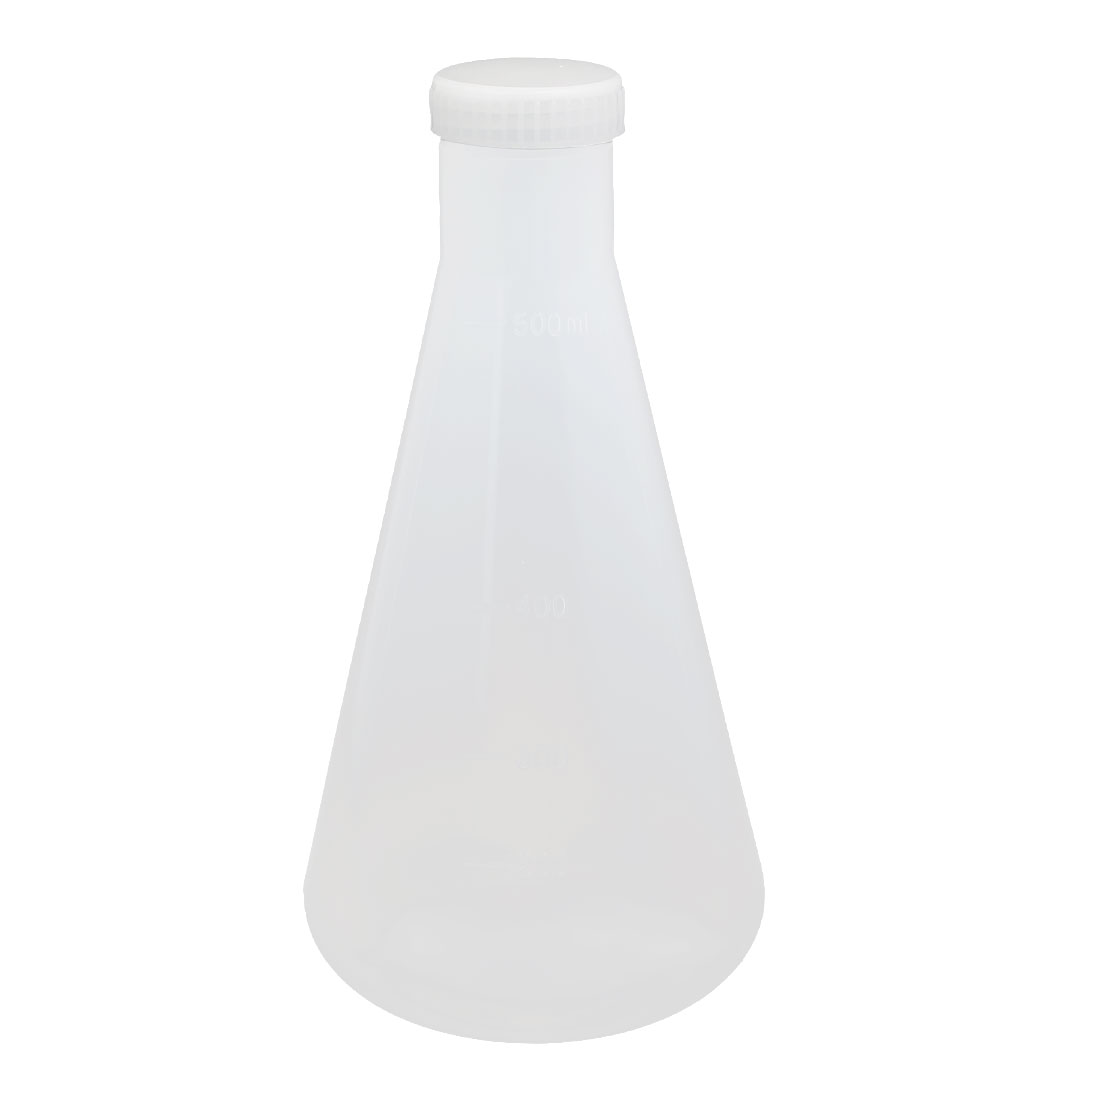 Chemistry Lab 500ml Plastic Cone Graduated Measuring Cup Thicken Clear